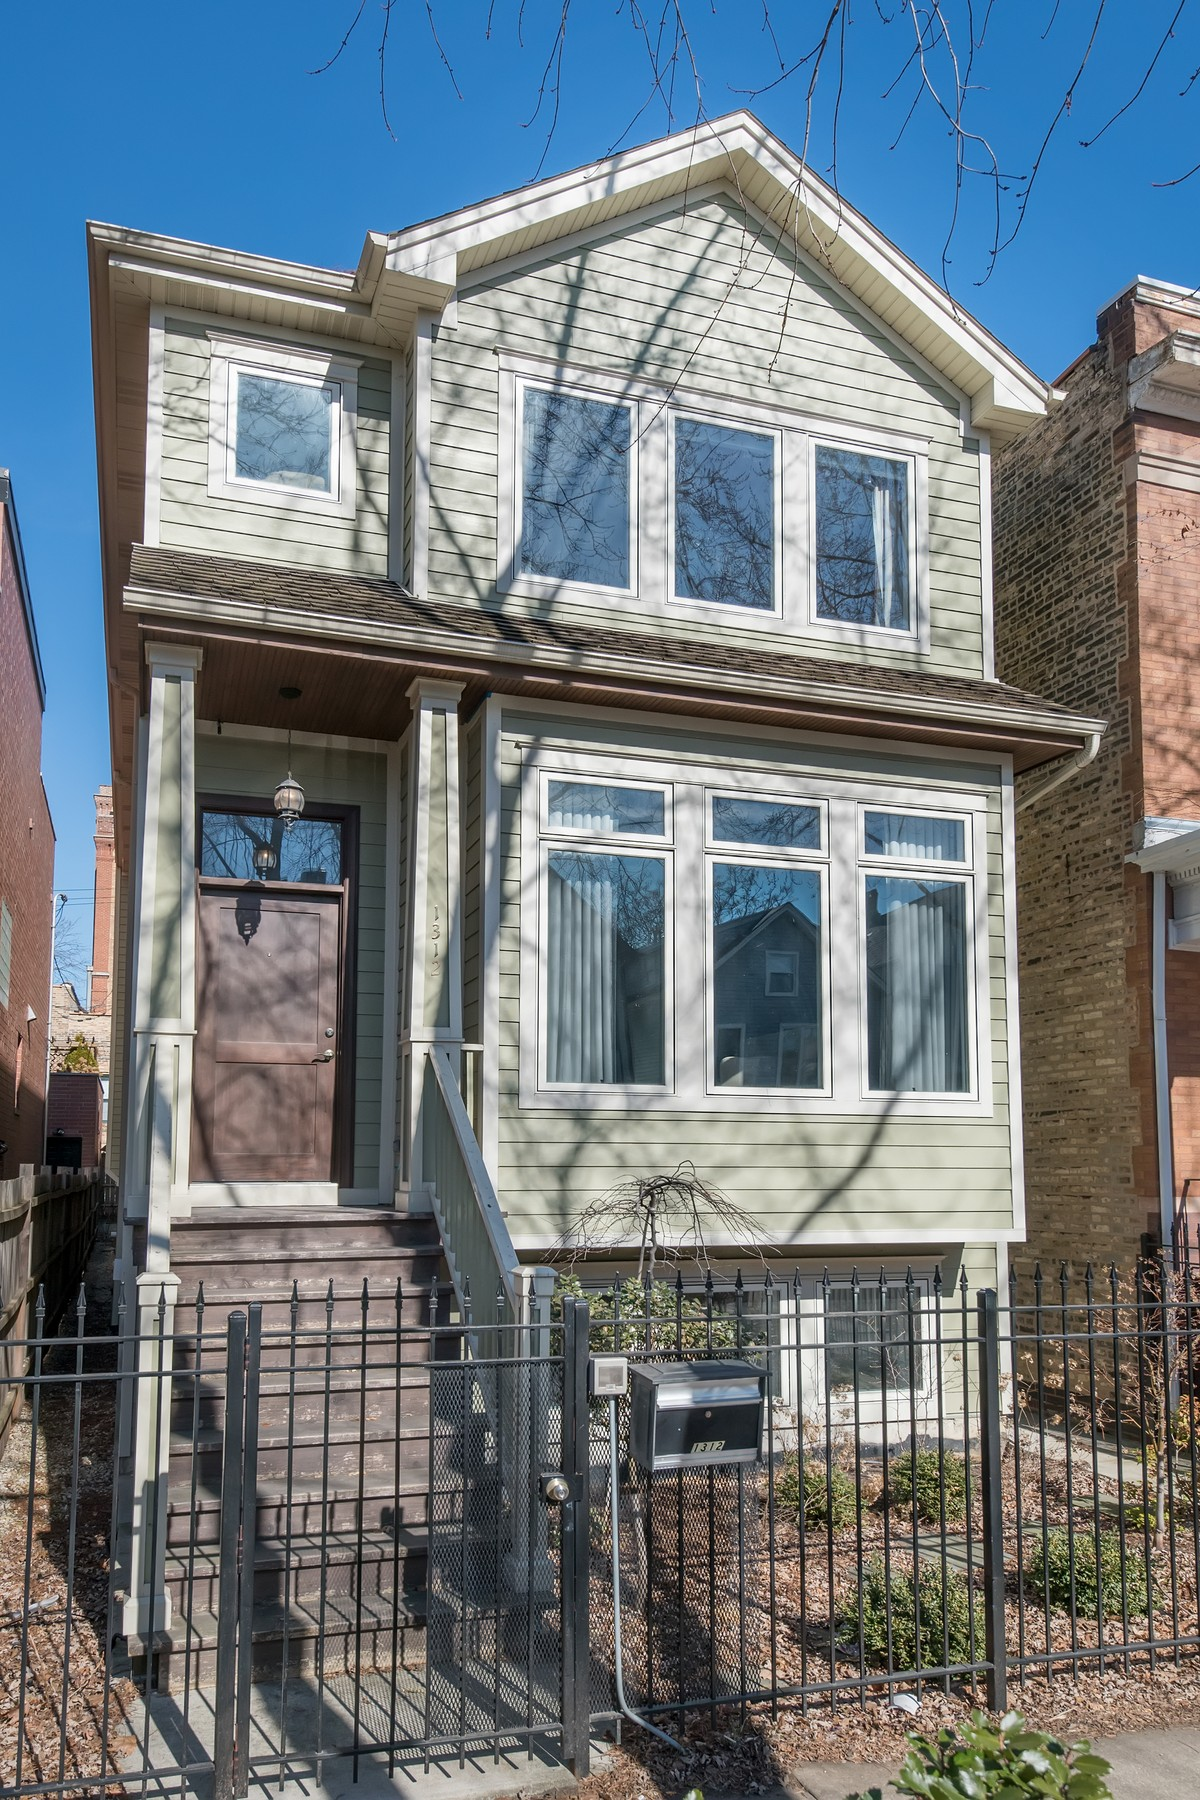 Single Family Home for Sale at Perfect Lakeview Home In Burley School District! 1312 W Barry Avenue Lakeview, Chicago, Illinois, 60657 United States